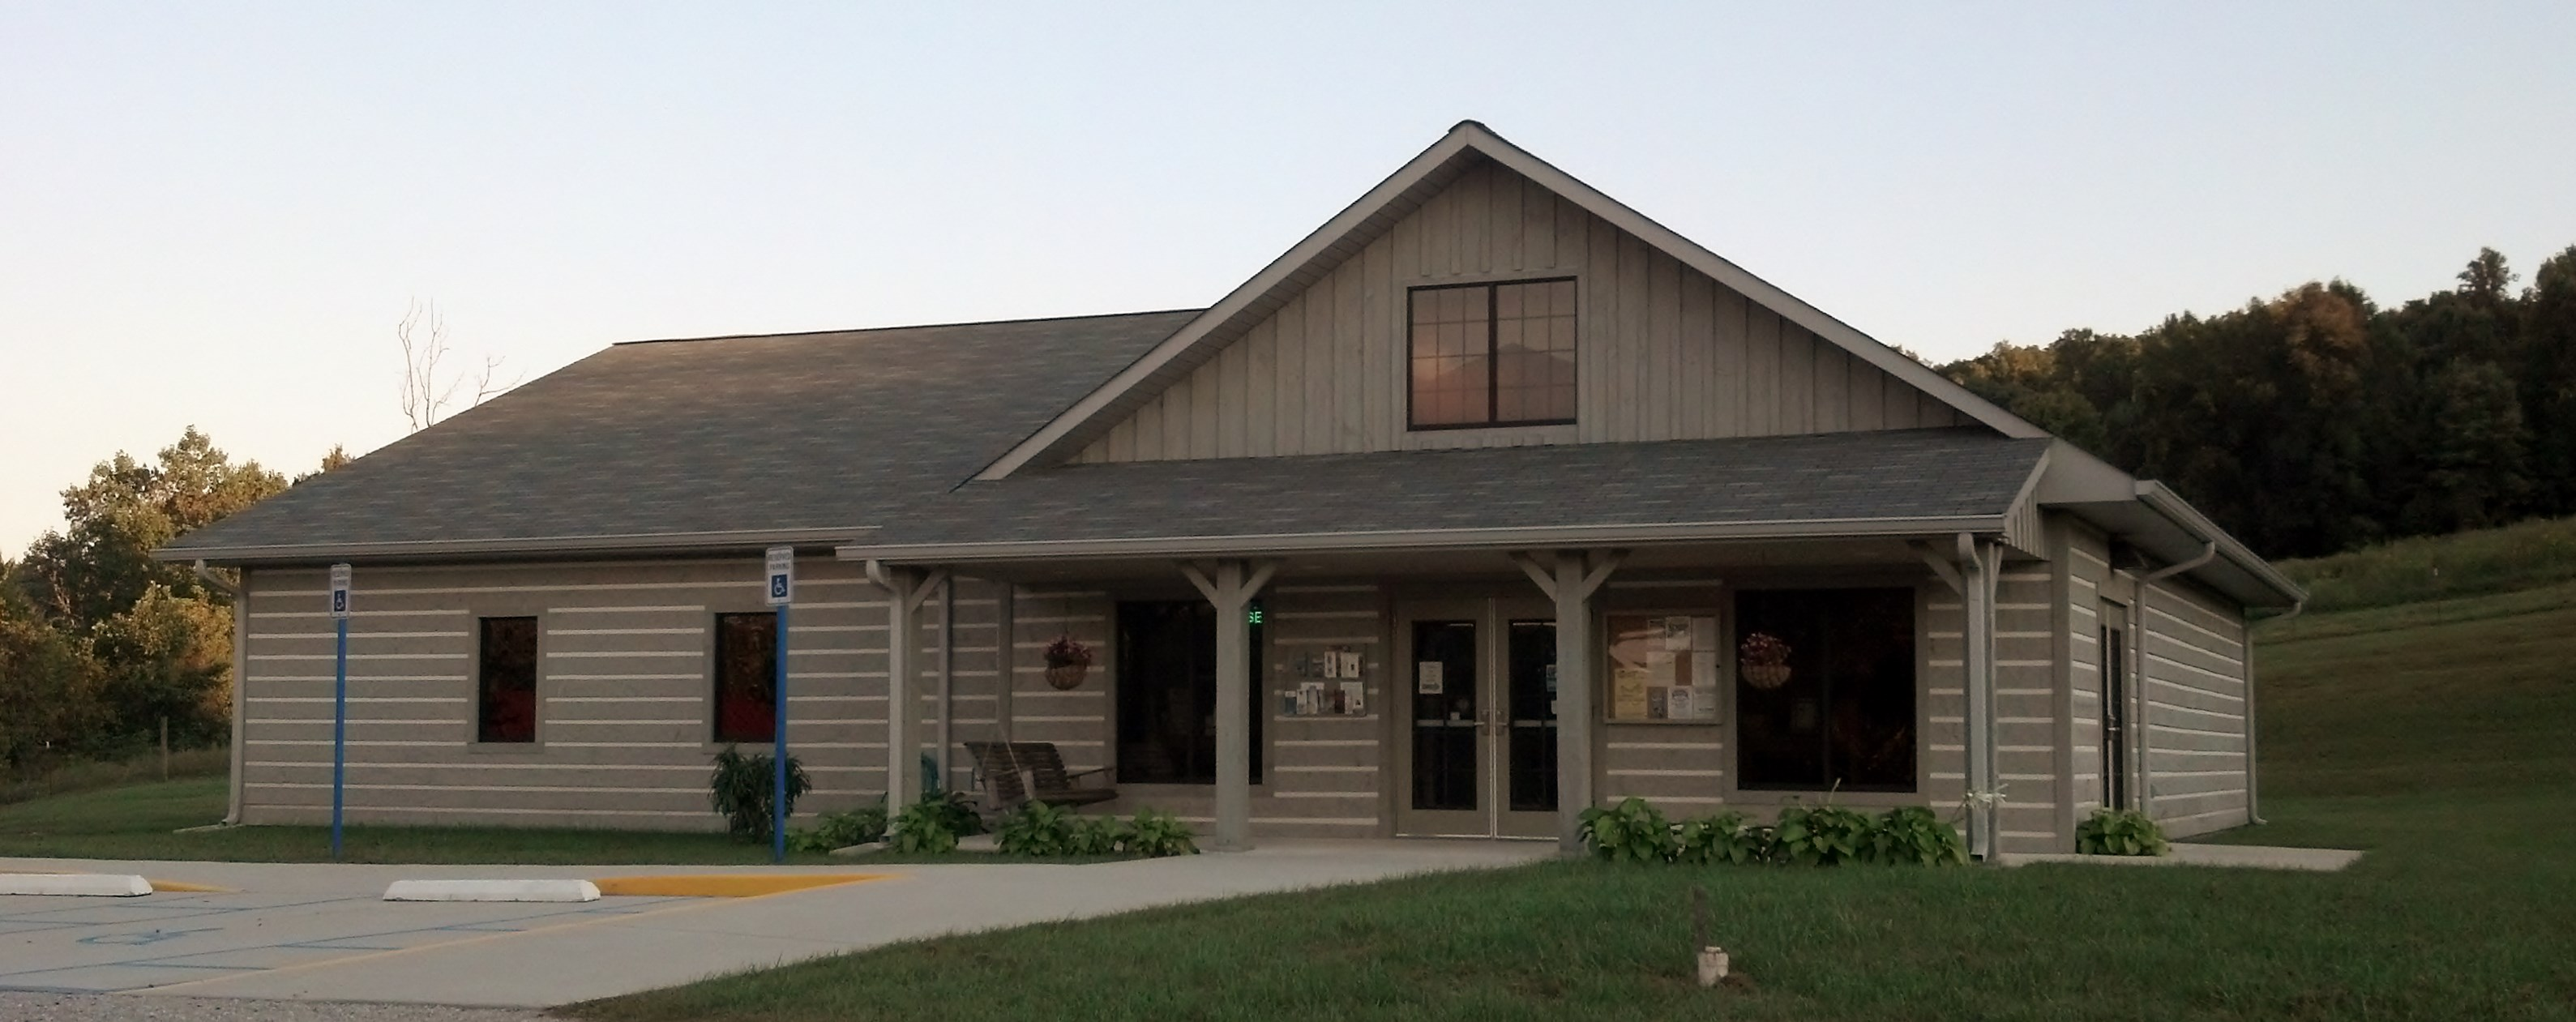 Pickett County Welcome Center